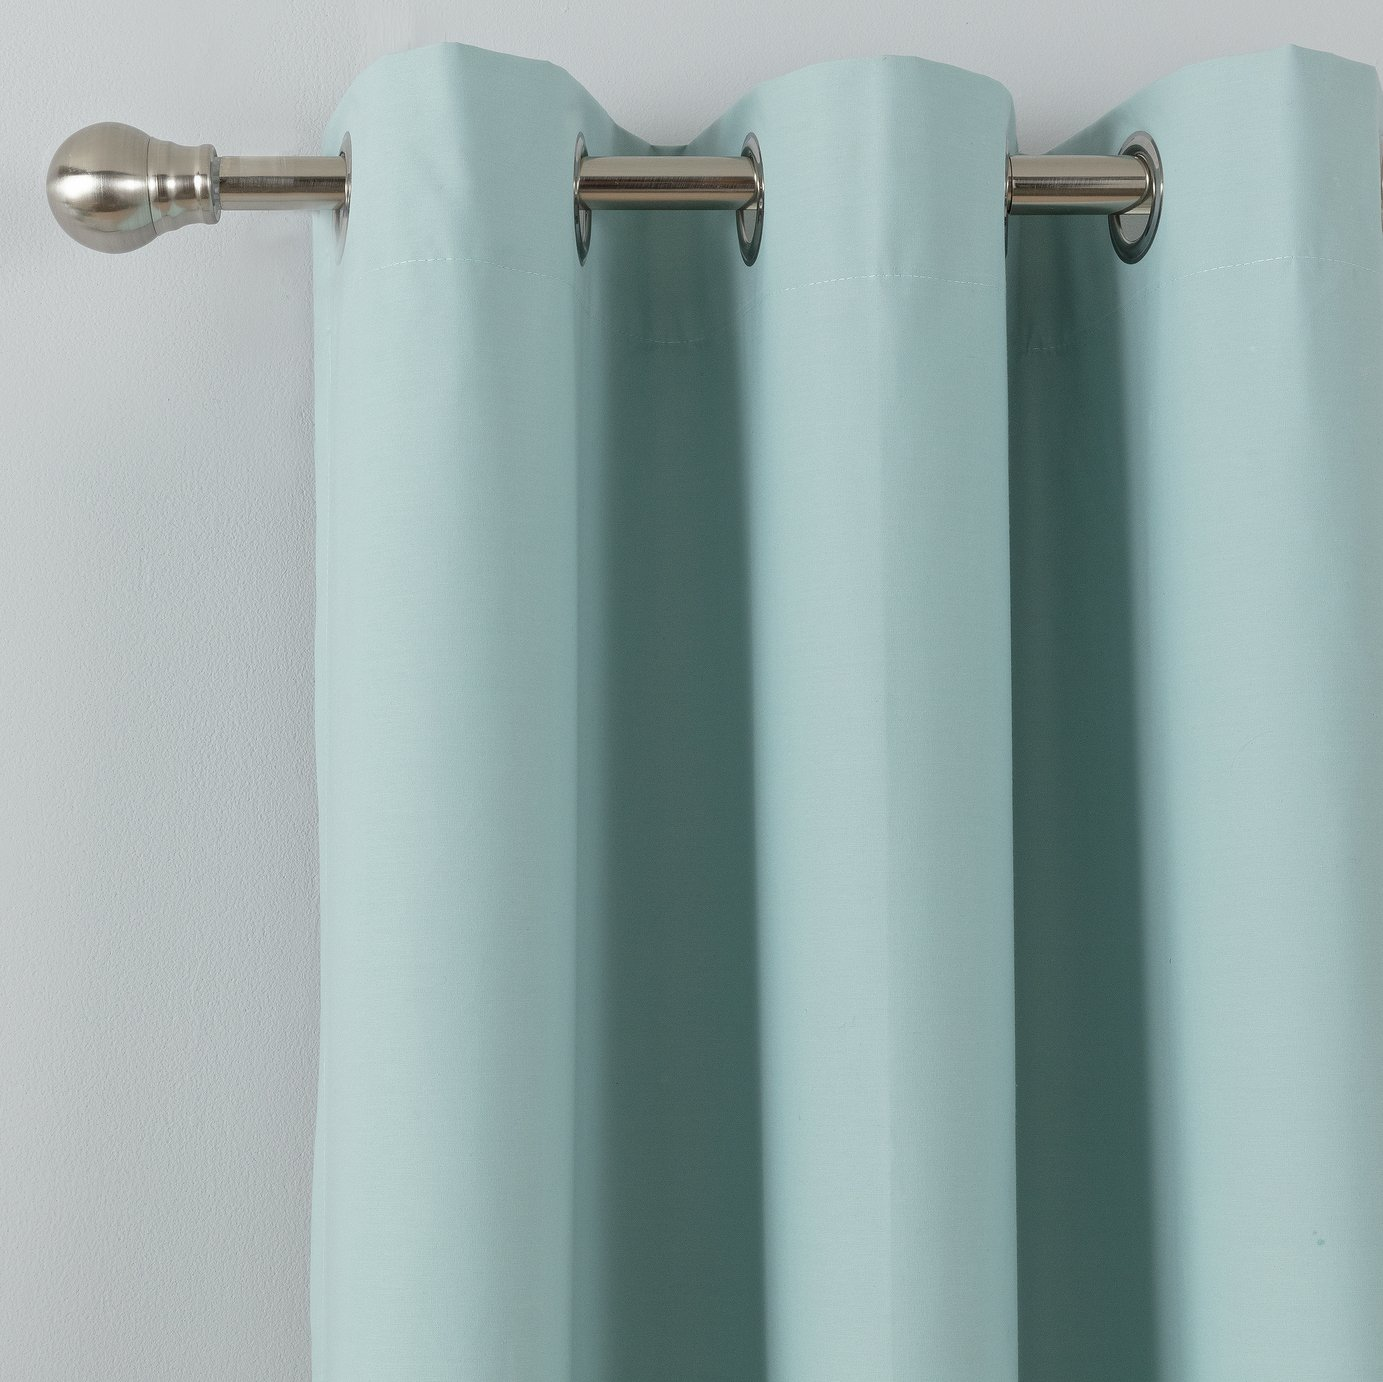 Argos Home Blackout Thermal Eyelet Curtains - Duck Egg